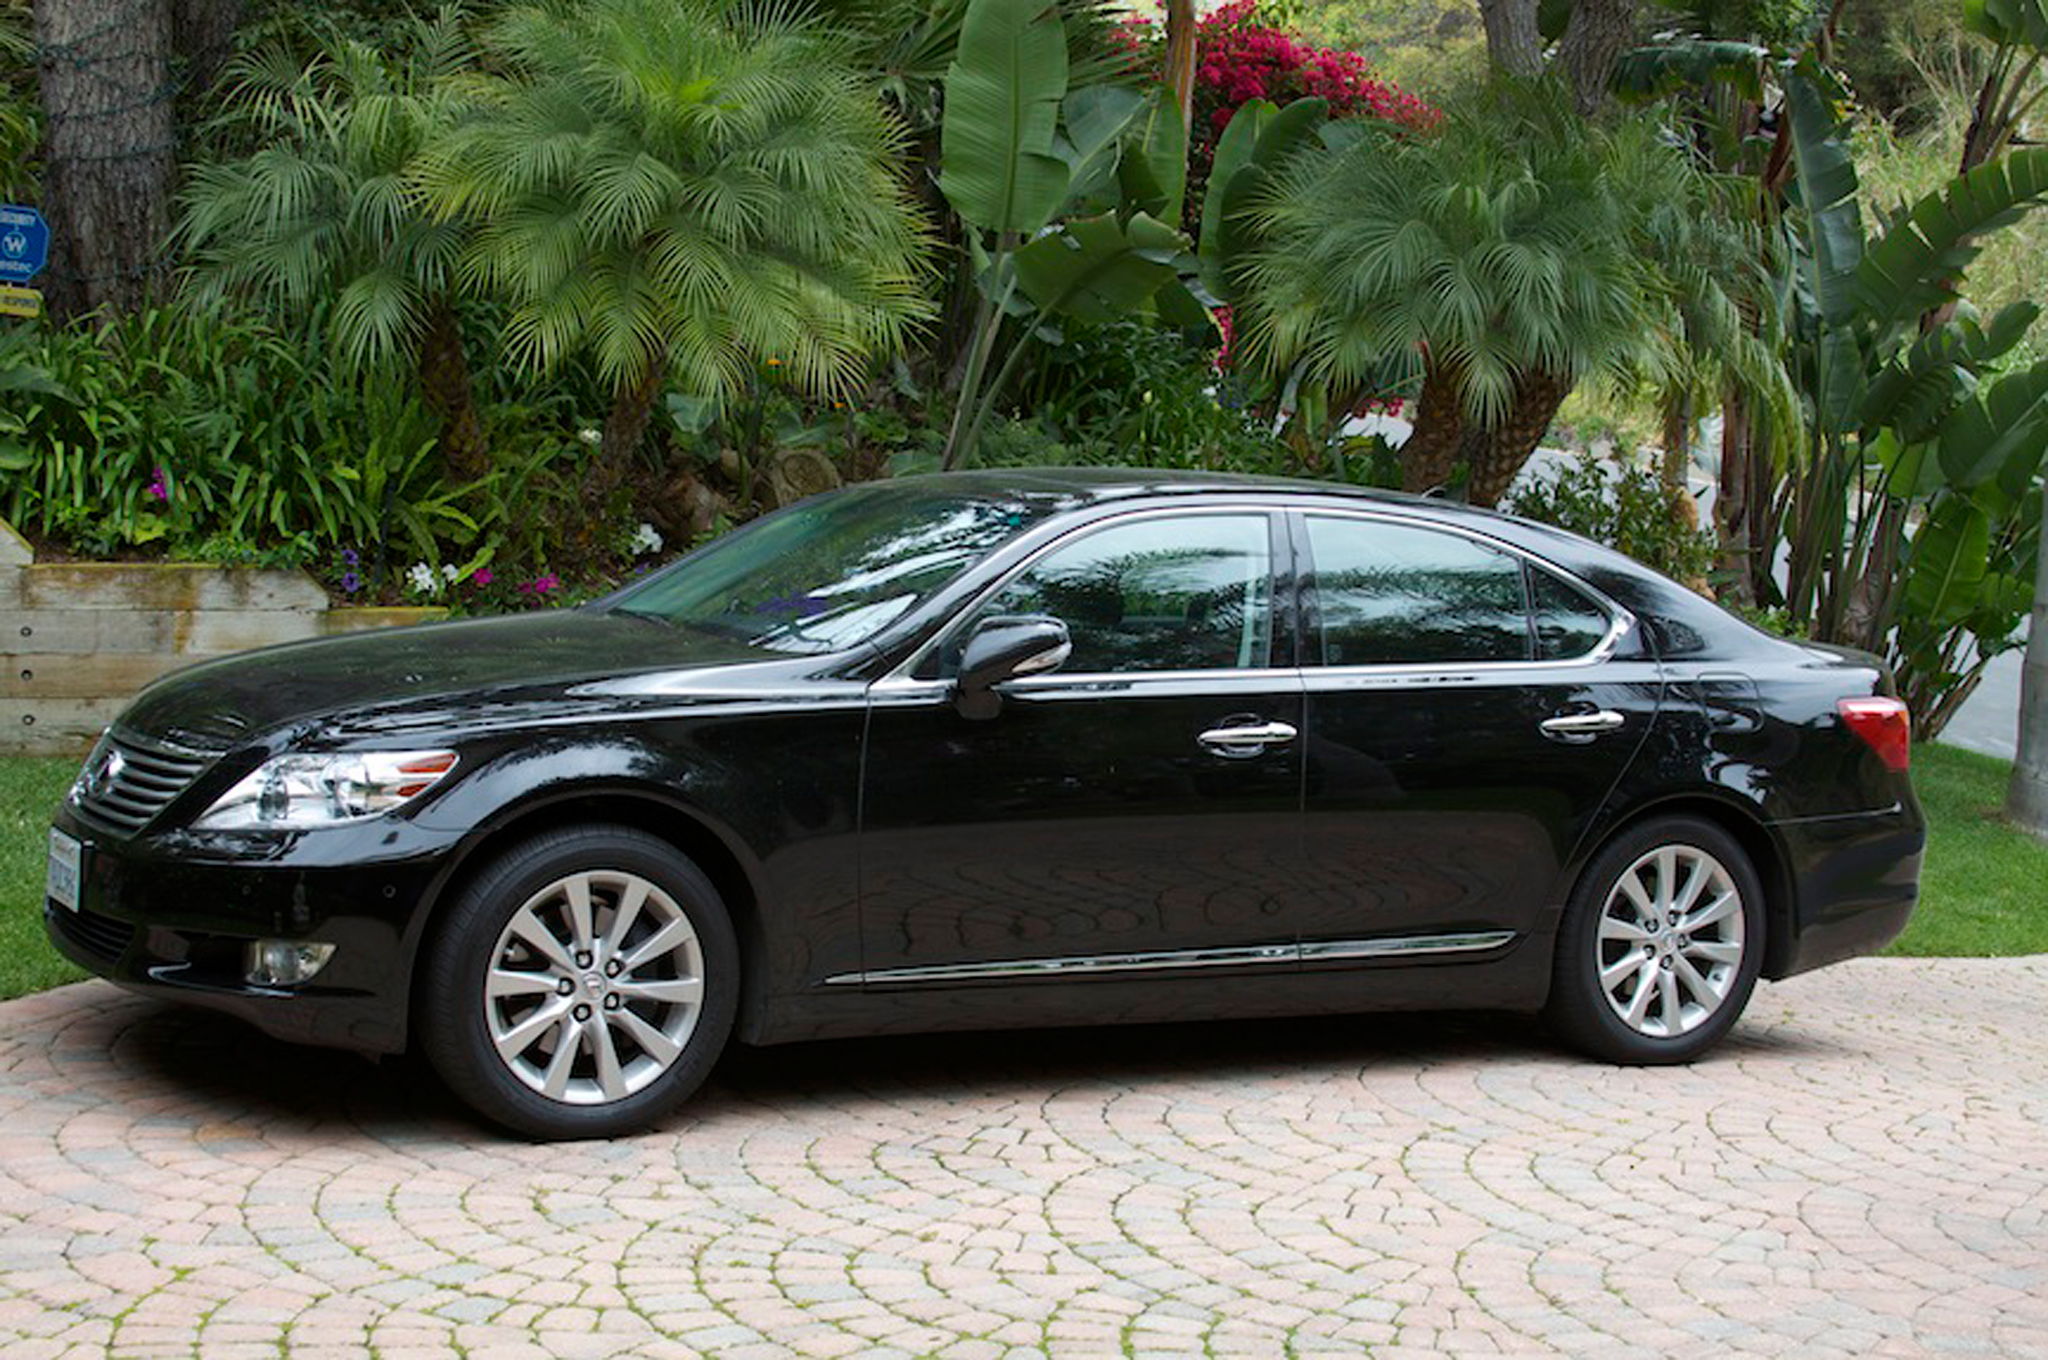 Lexus LS 460 2012 photo - 1